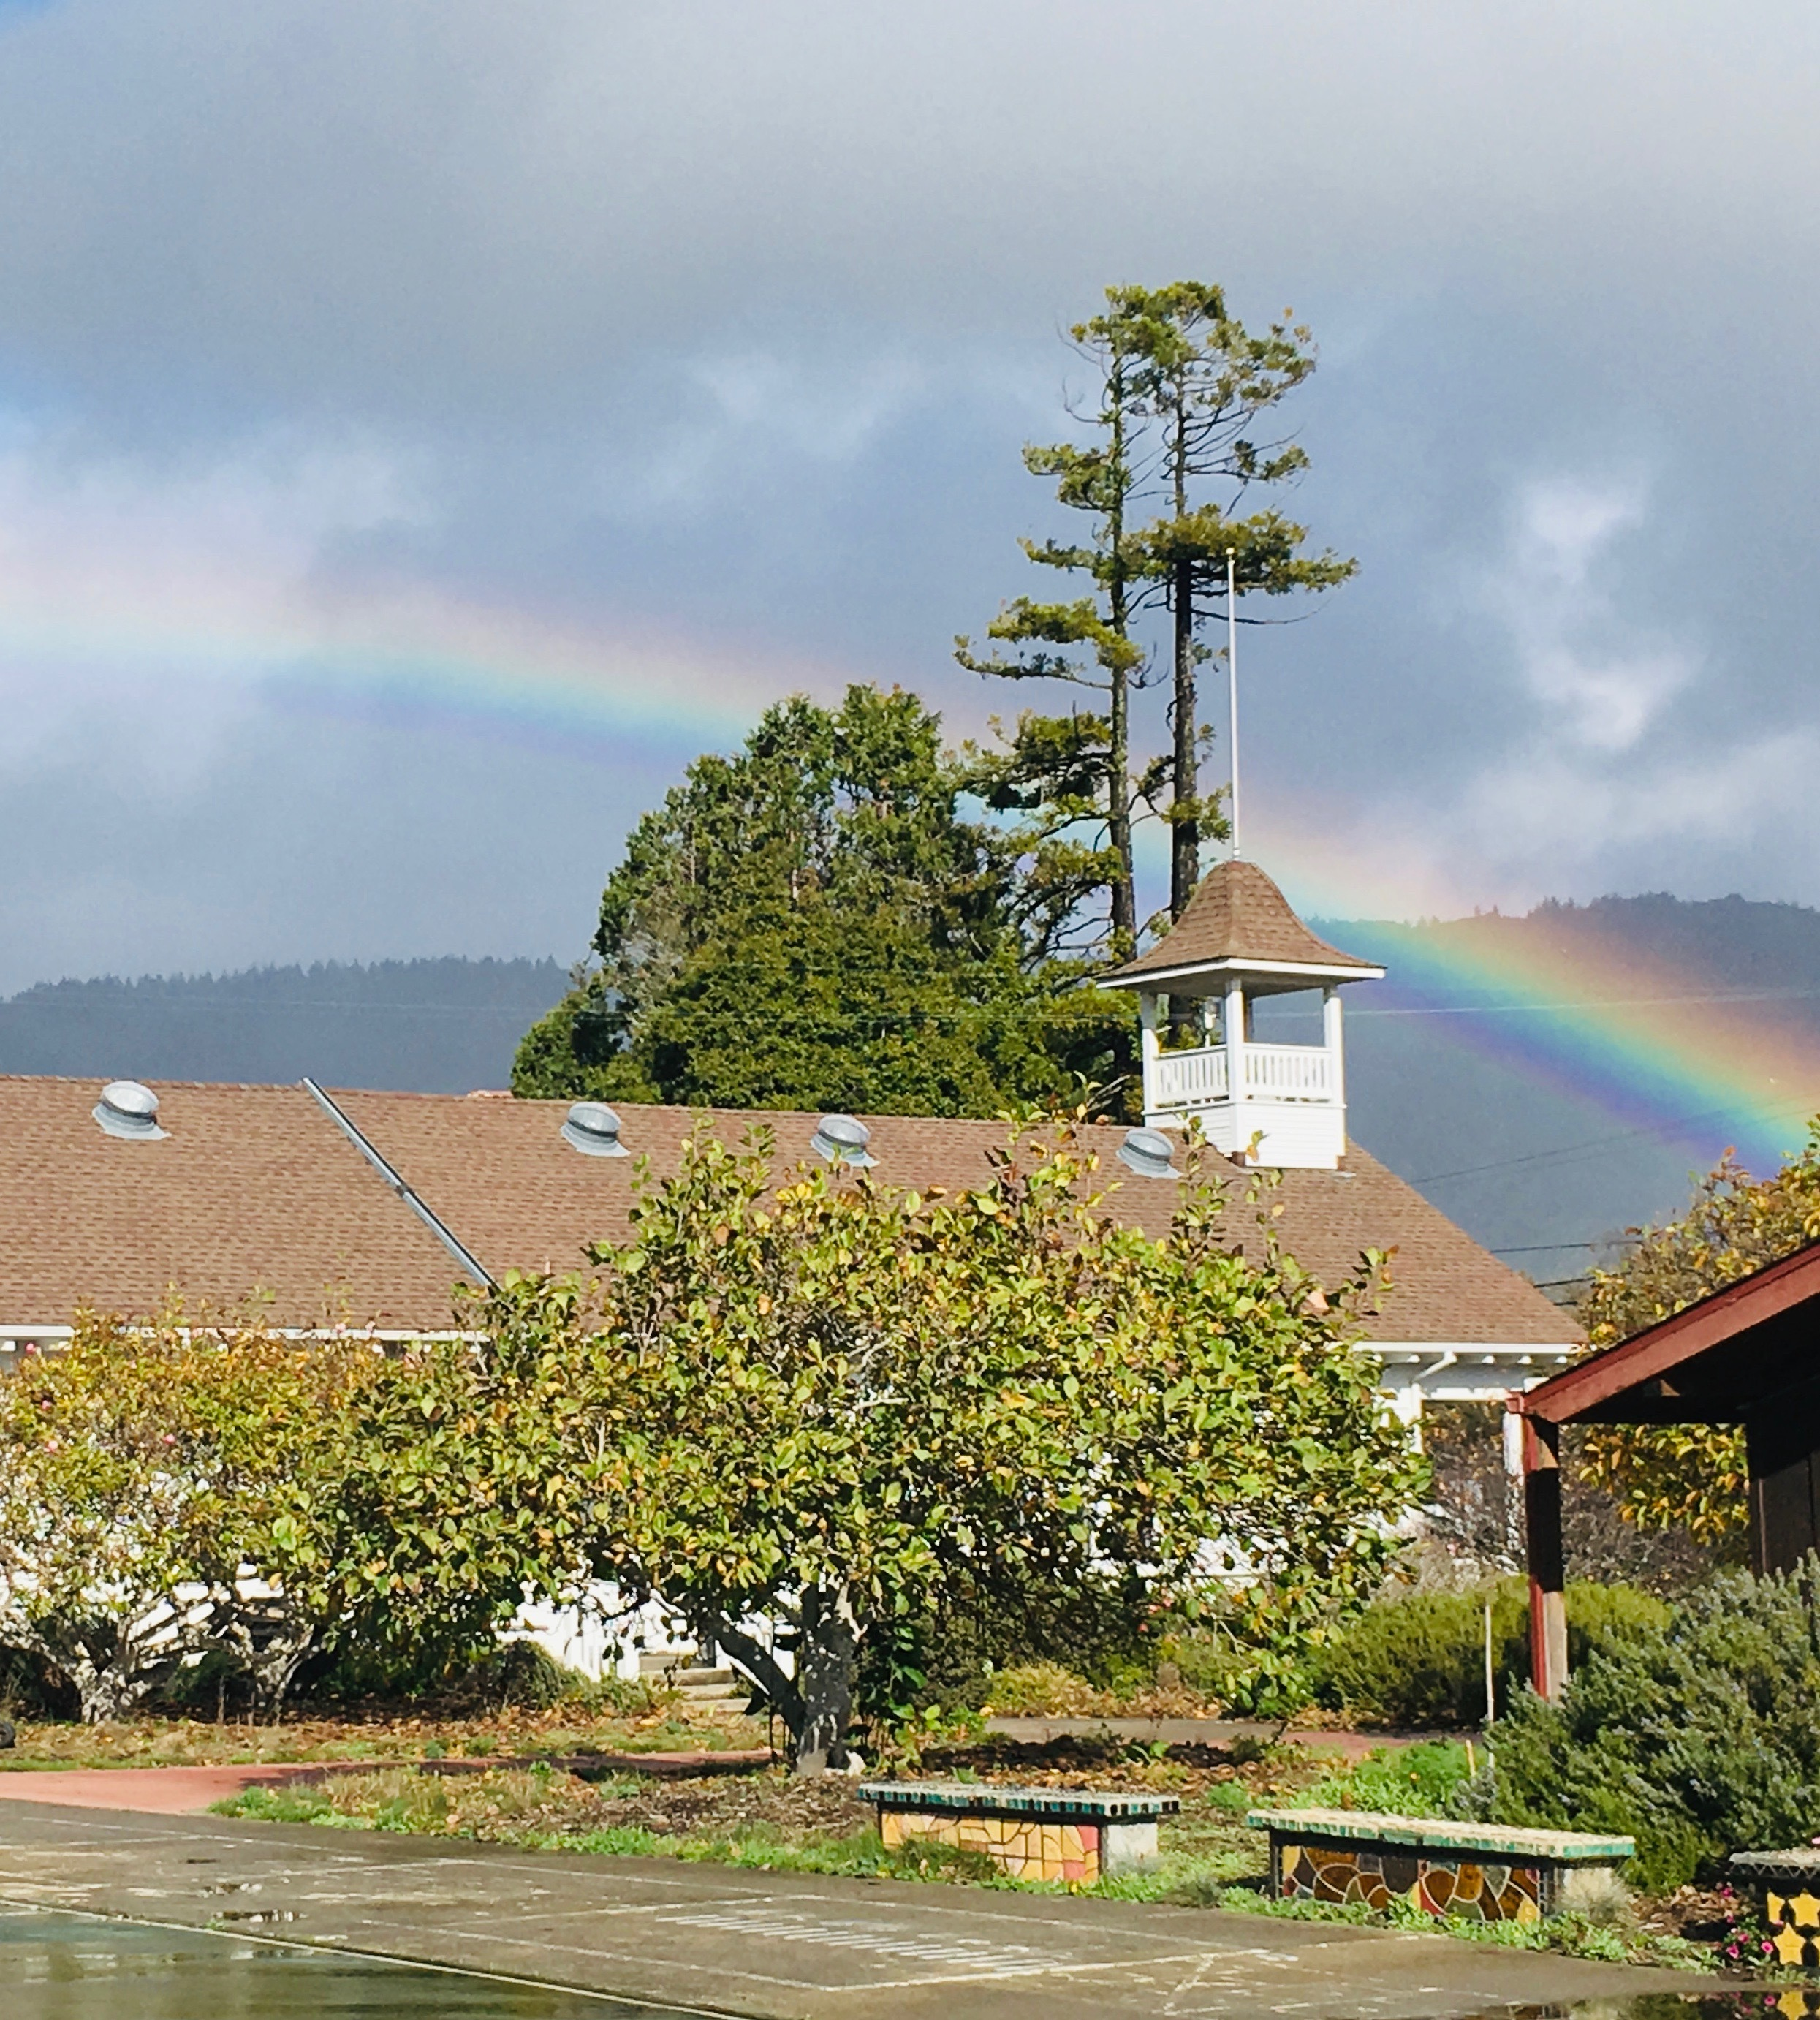 Bolinas Campus on a rainy day